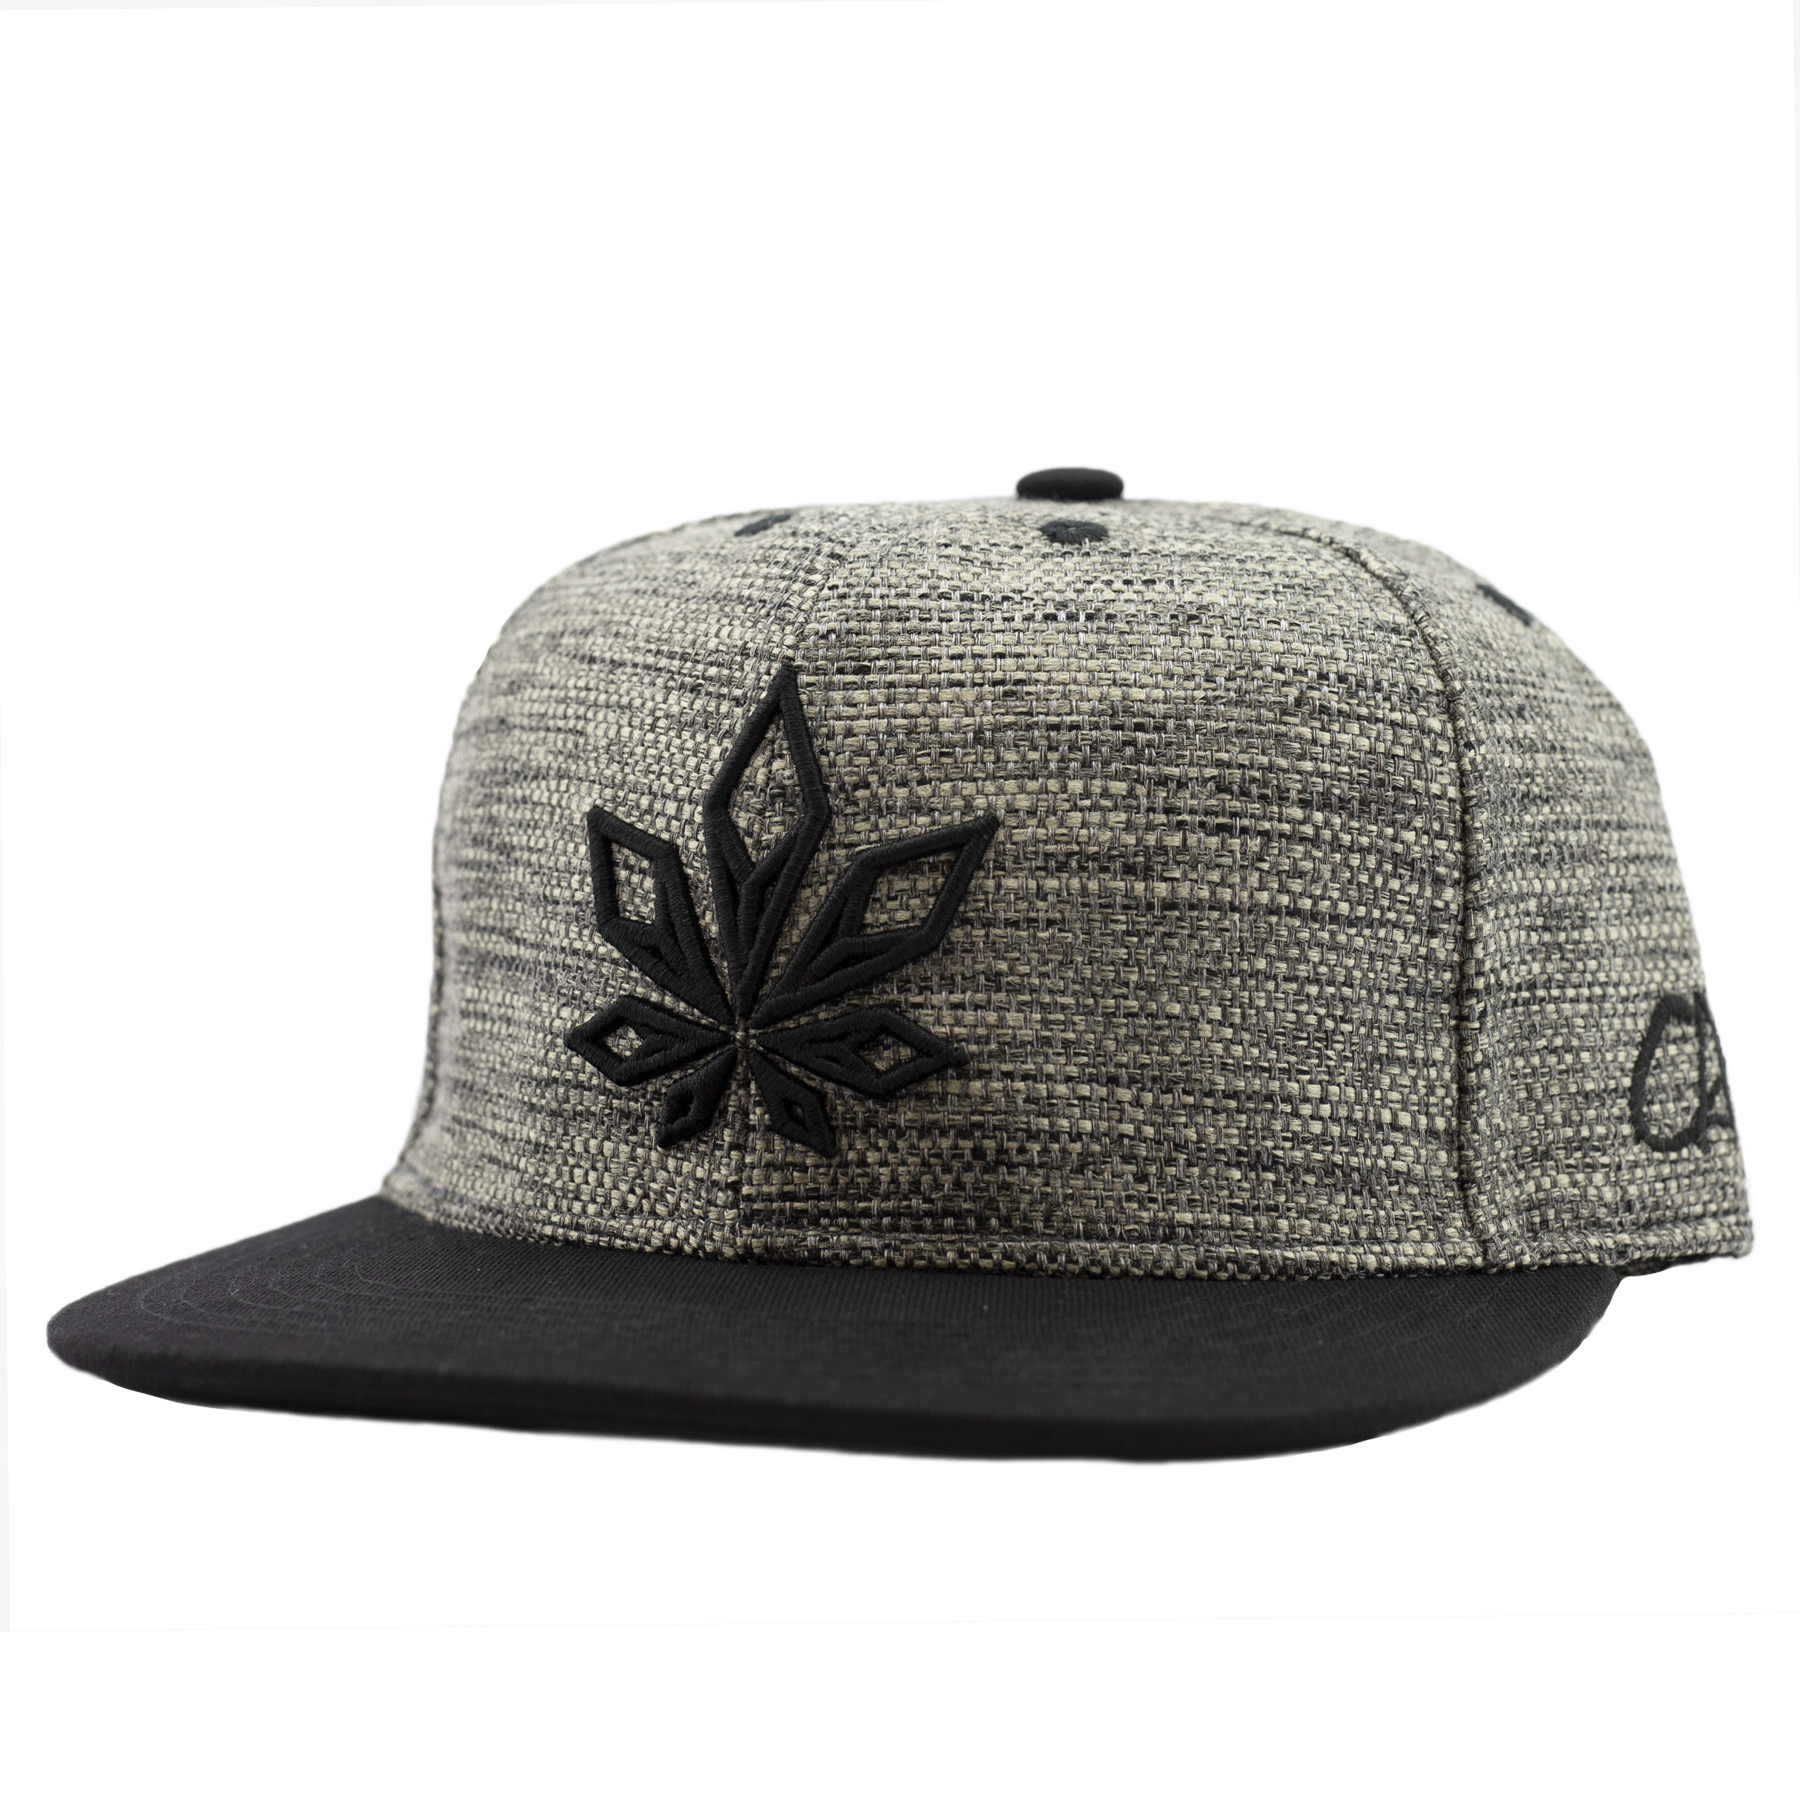 Top of the Crop Snapback by Calibis Clothing